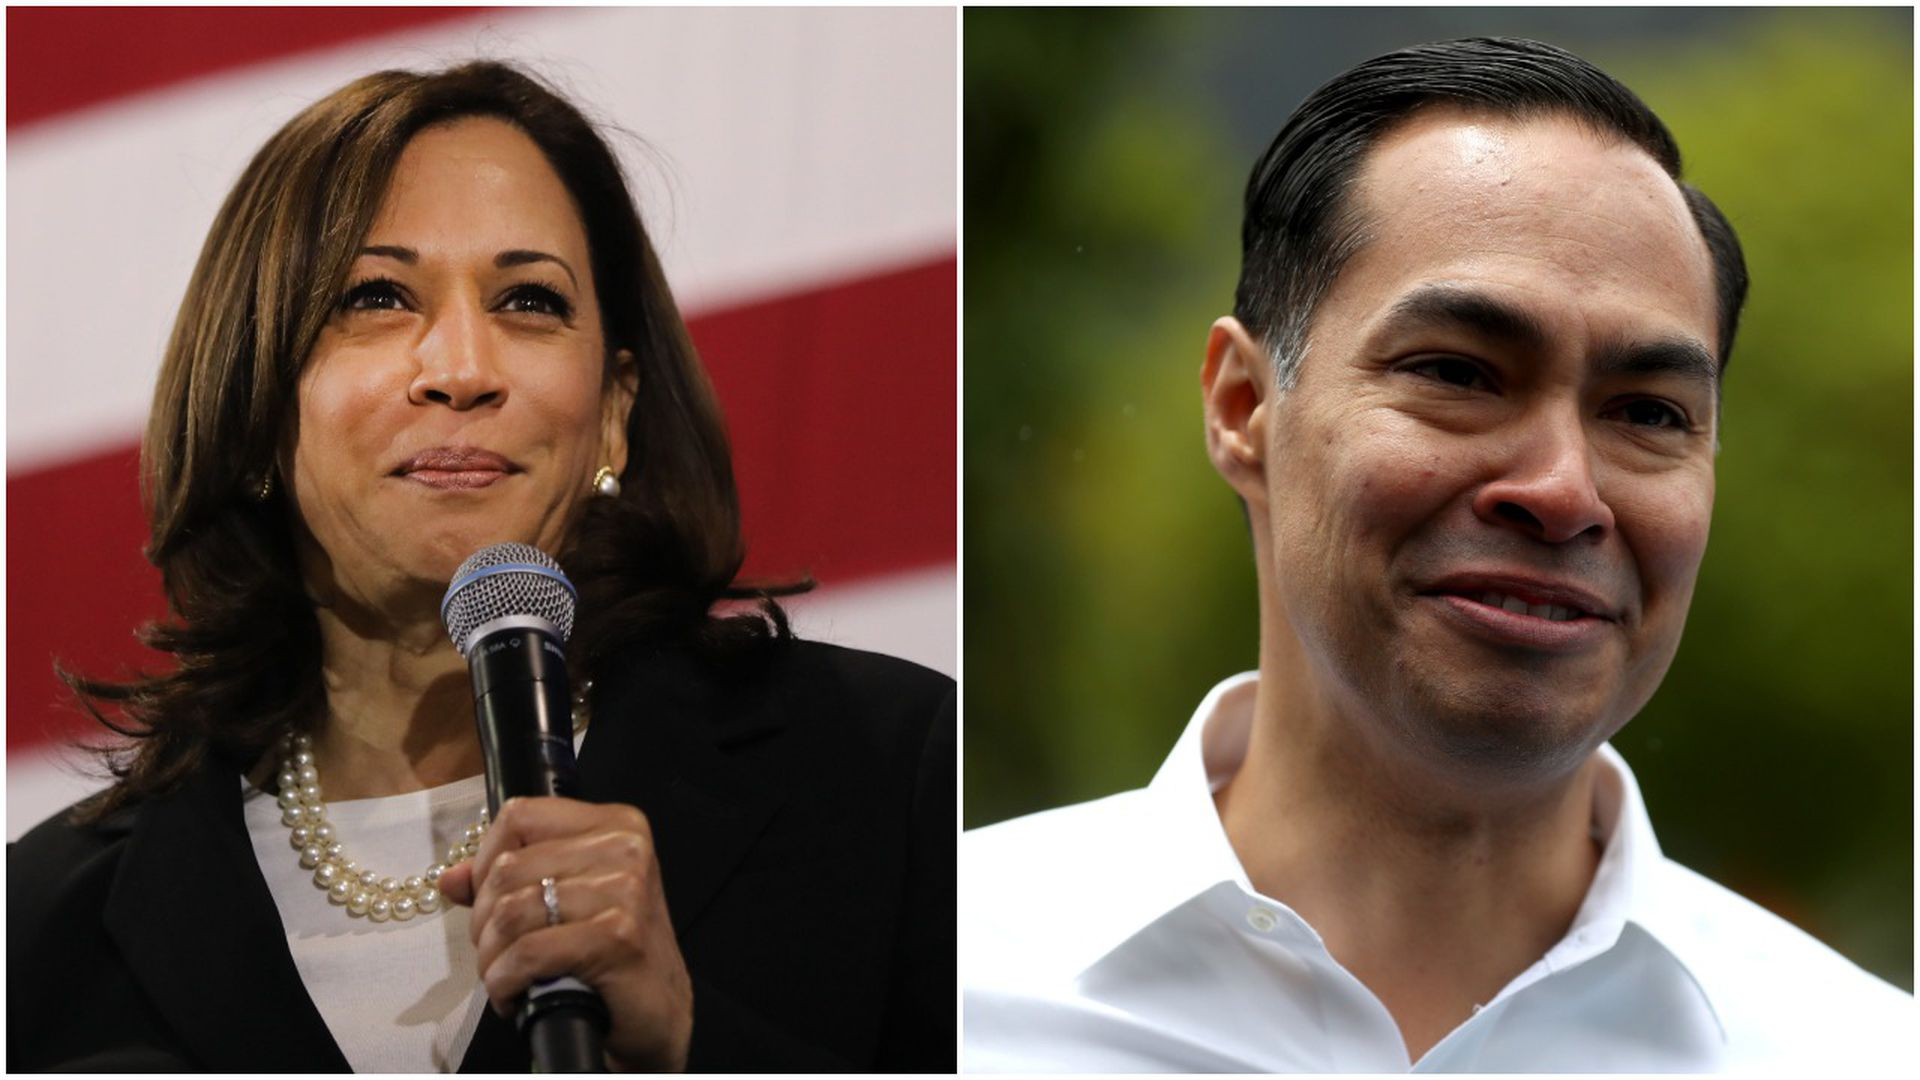 This image is a two-way split screen between Kamala Harris and Julian Castro.